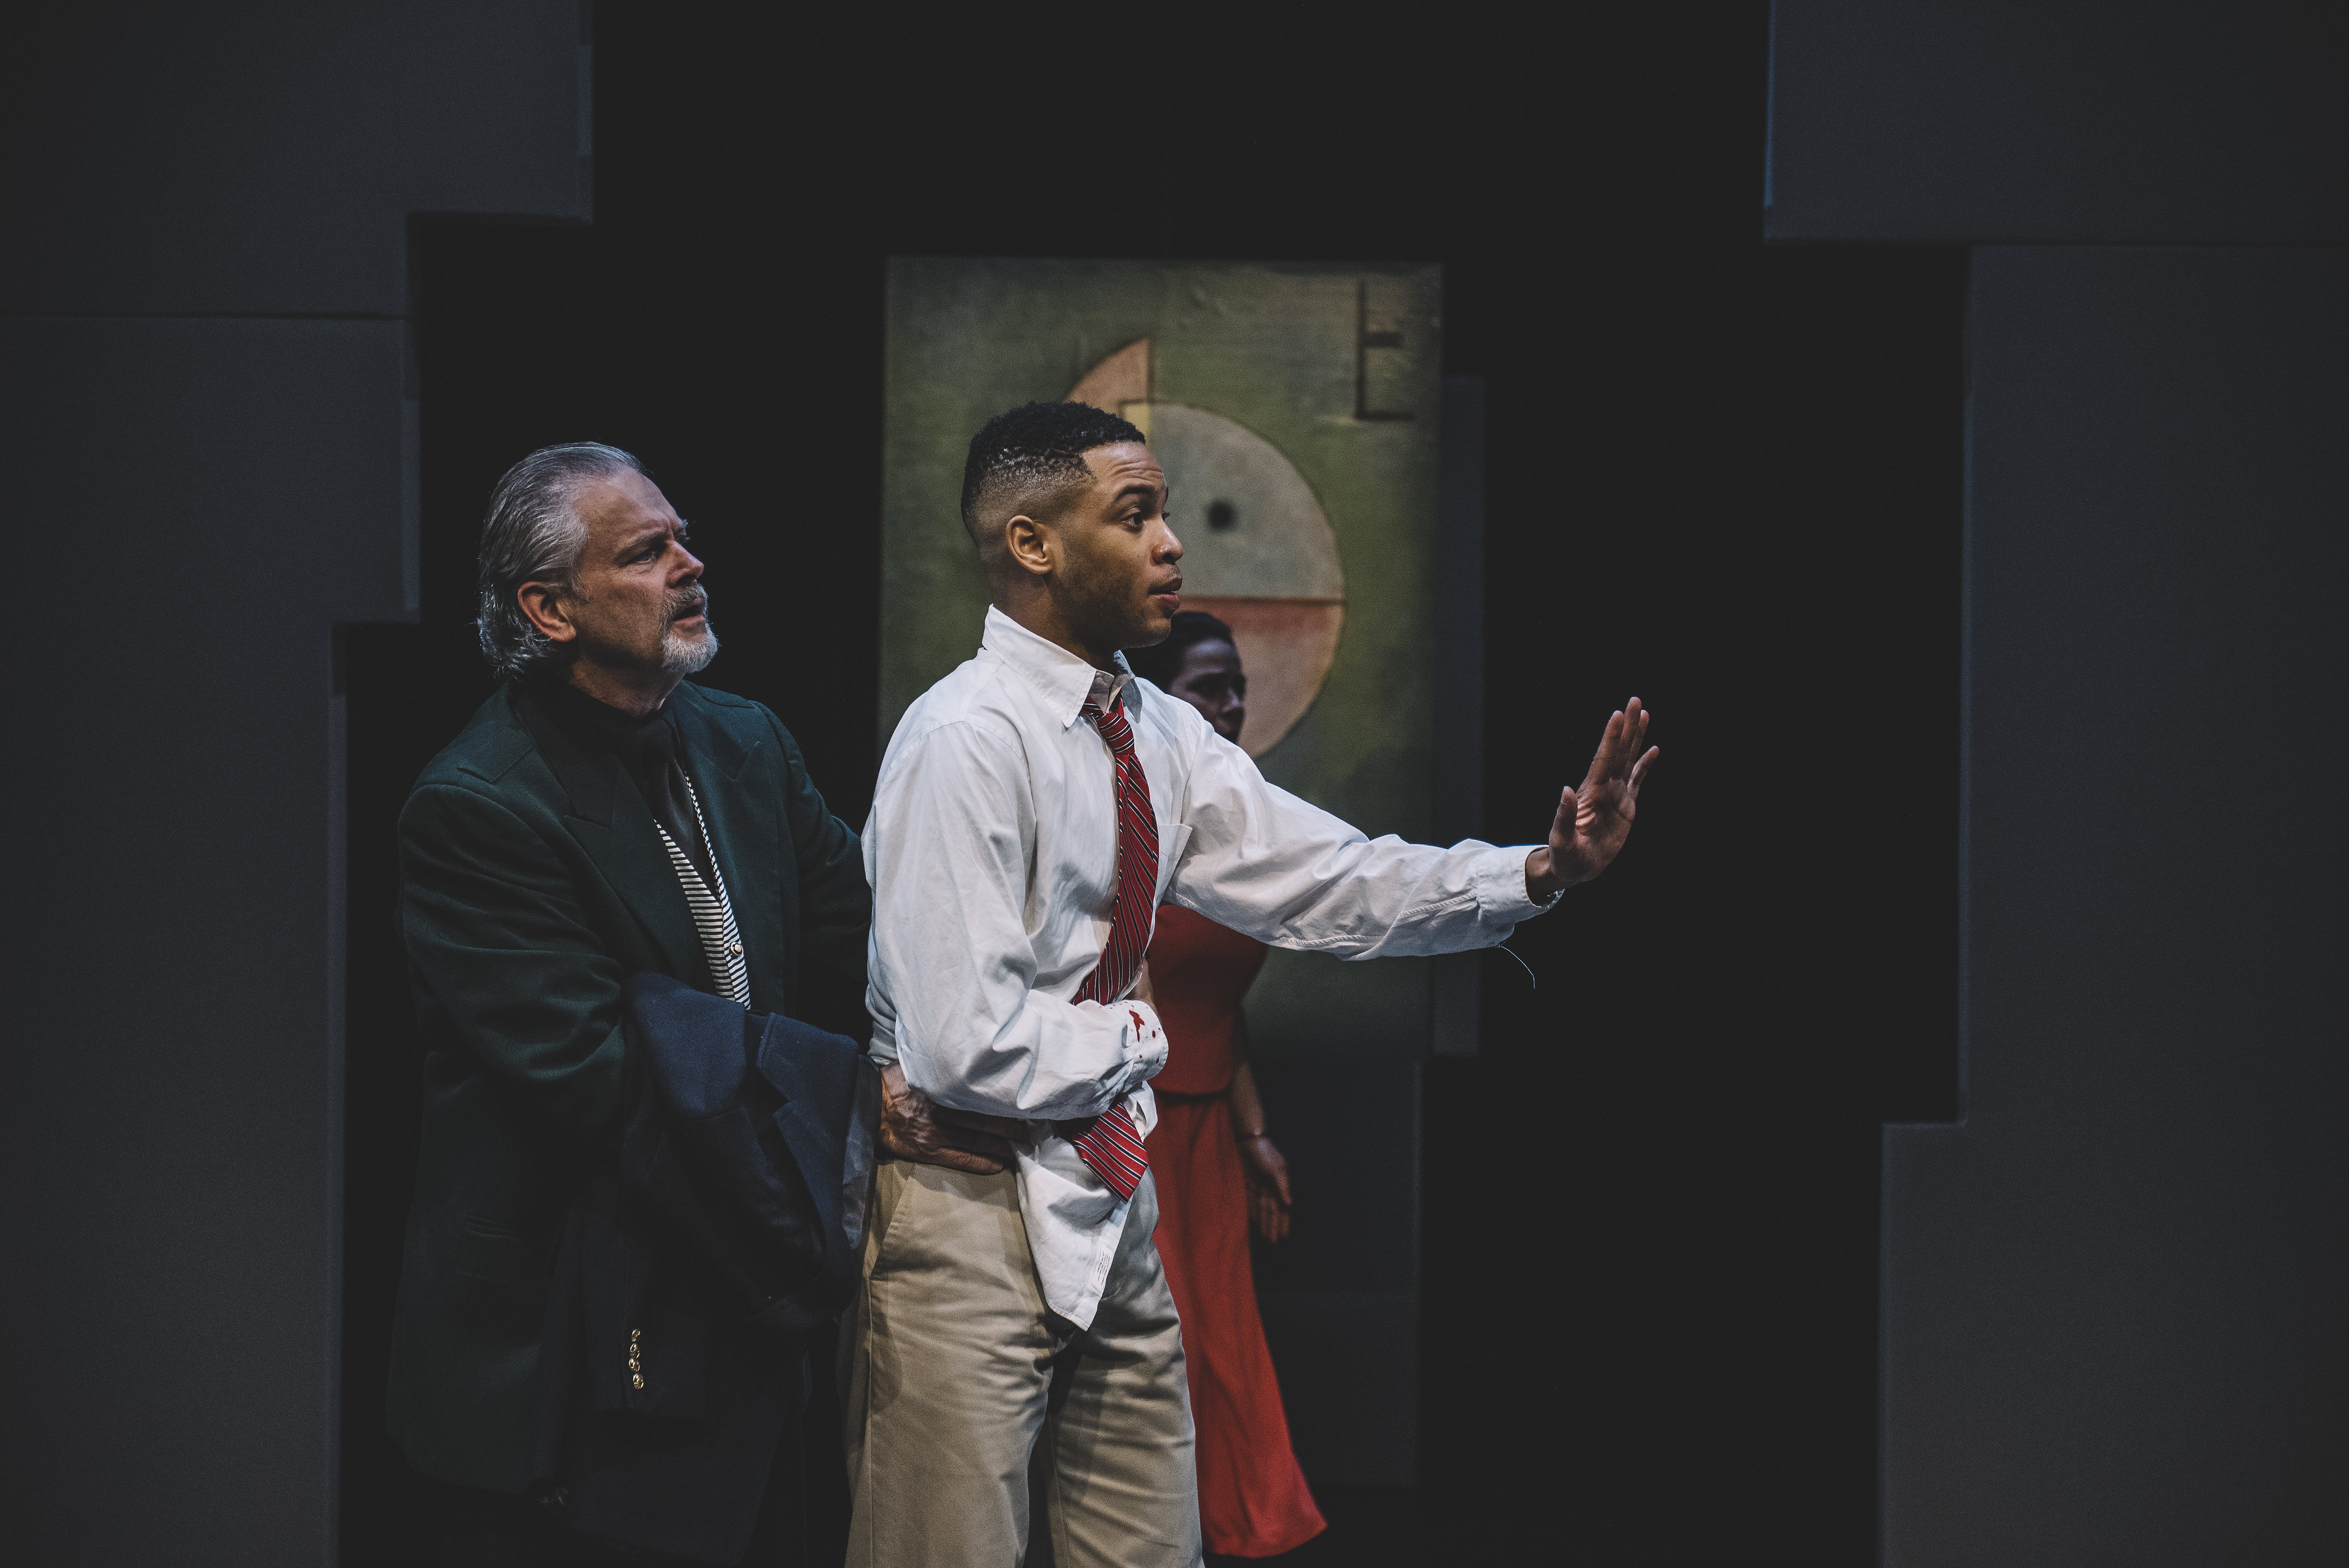 six degrees of separation Old vic, londonjohn guare's play still strikes me as an ingenious artefact rather than a play that embodies its ideas emotionally in the manner of the great american dramatists, writes michael billington.